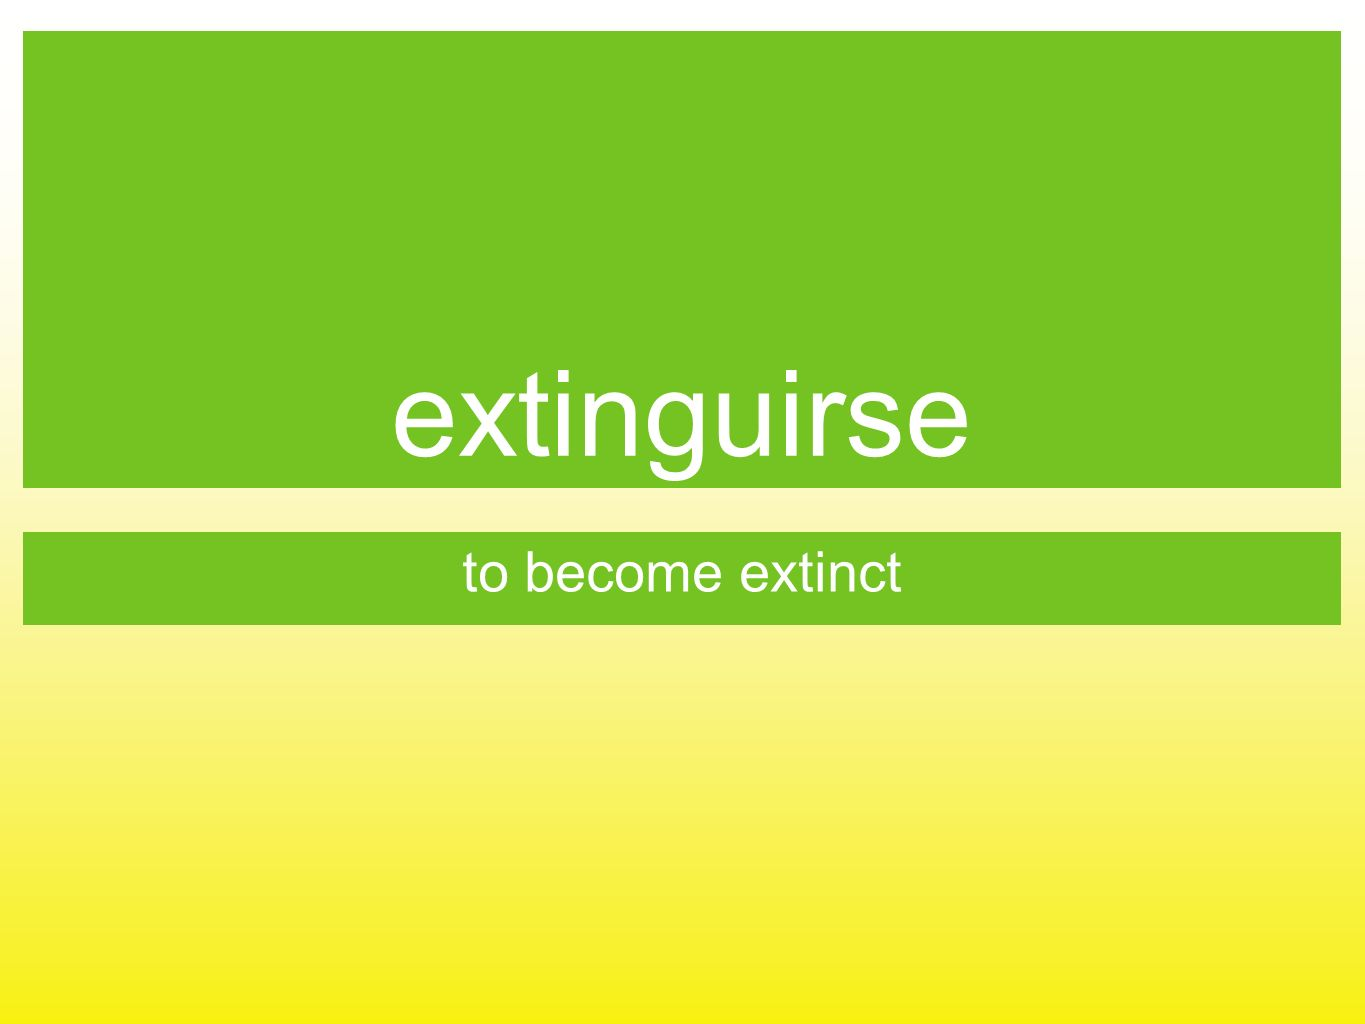 extinguirse to become extinct